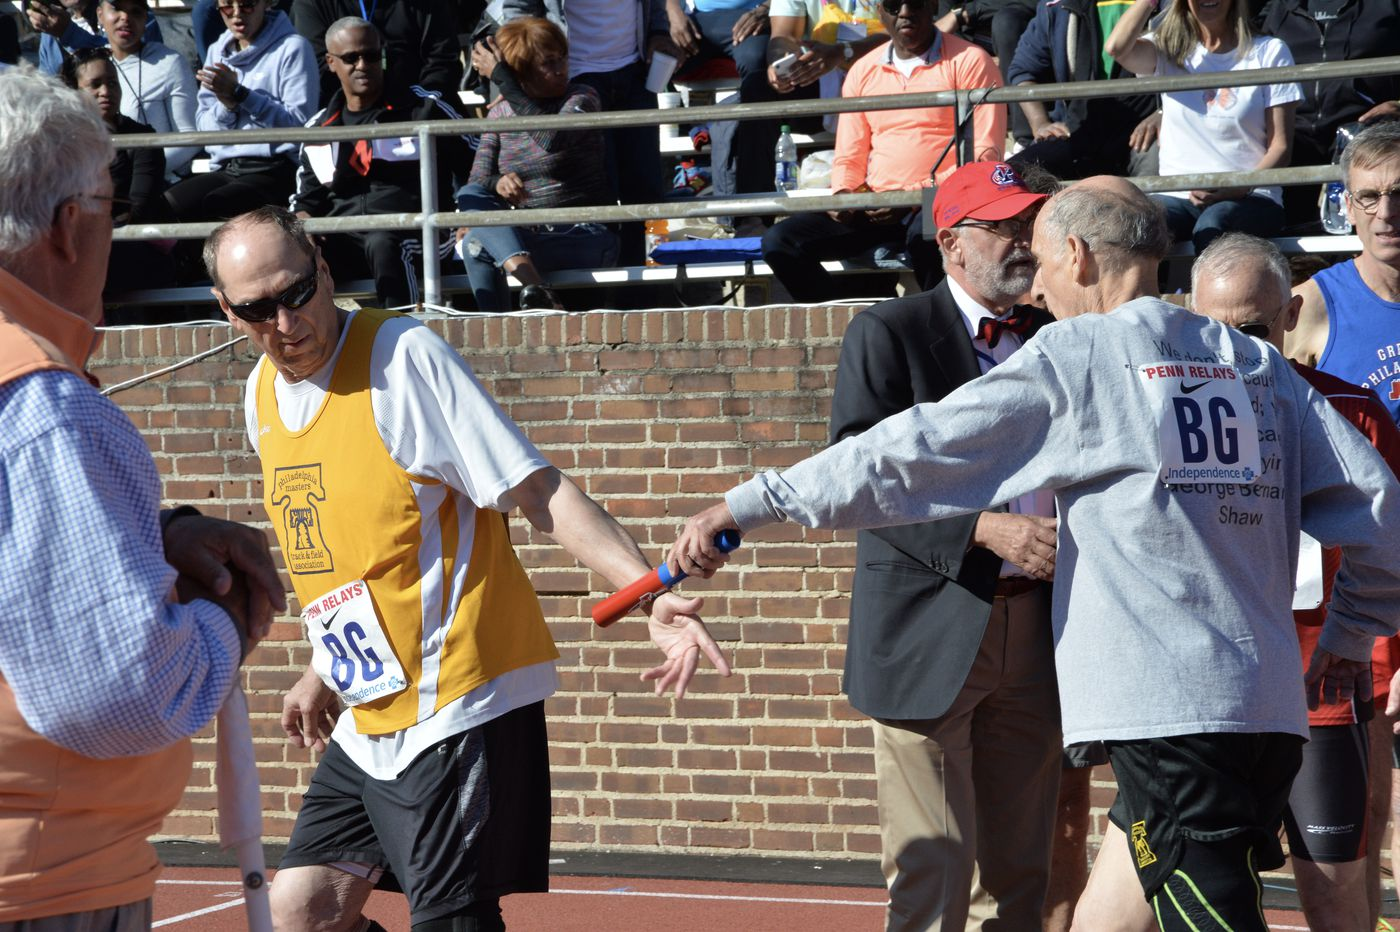 Dave Marovich, left, takes baton exchange from Bruce Rubin, right, after the leadoff leg of the 4x400-meter relay at the 2019 Penn Relays.